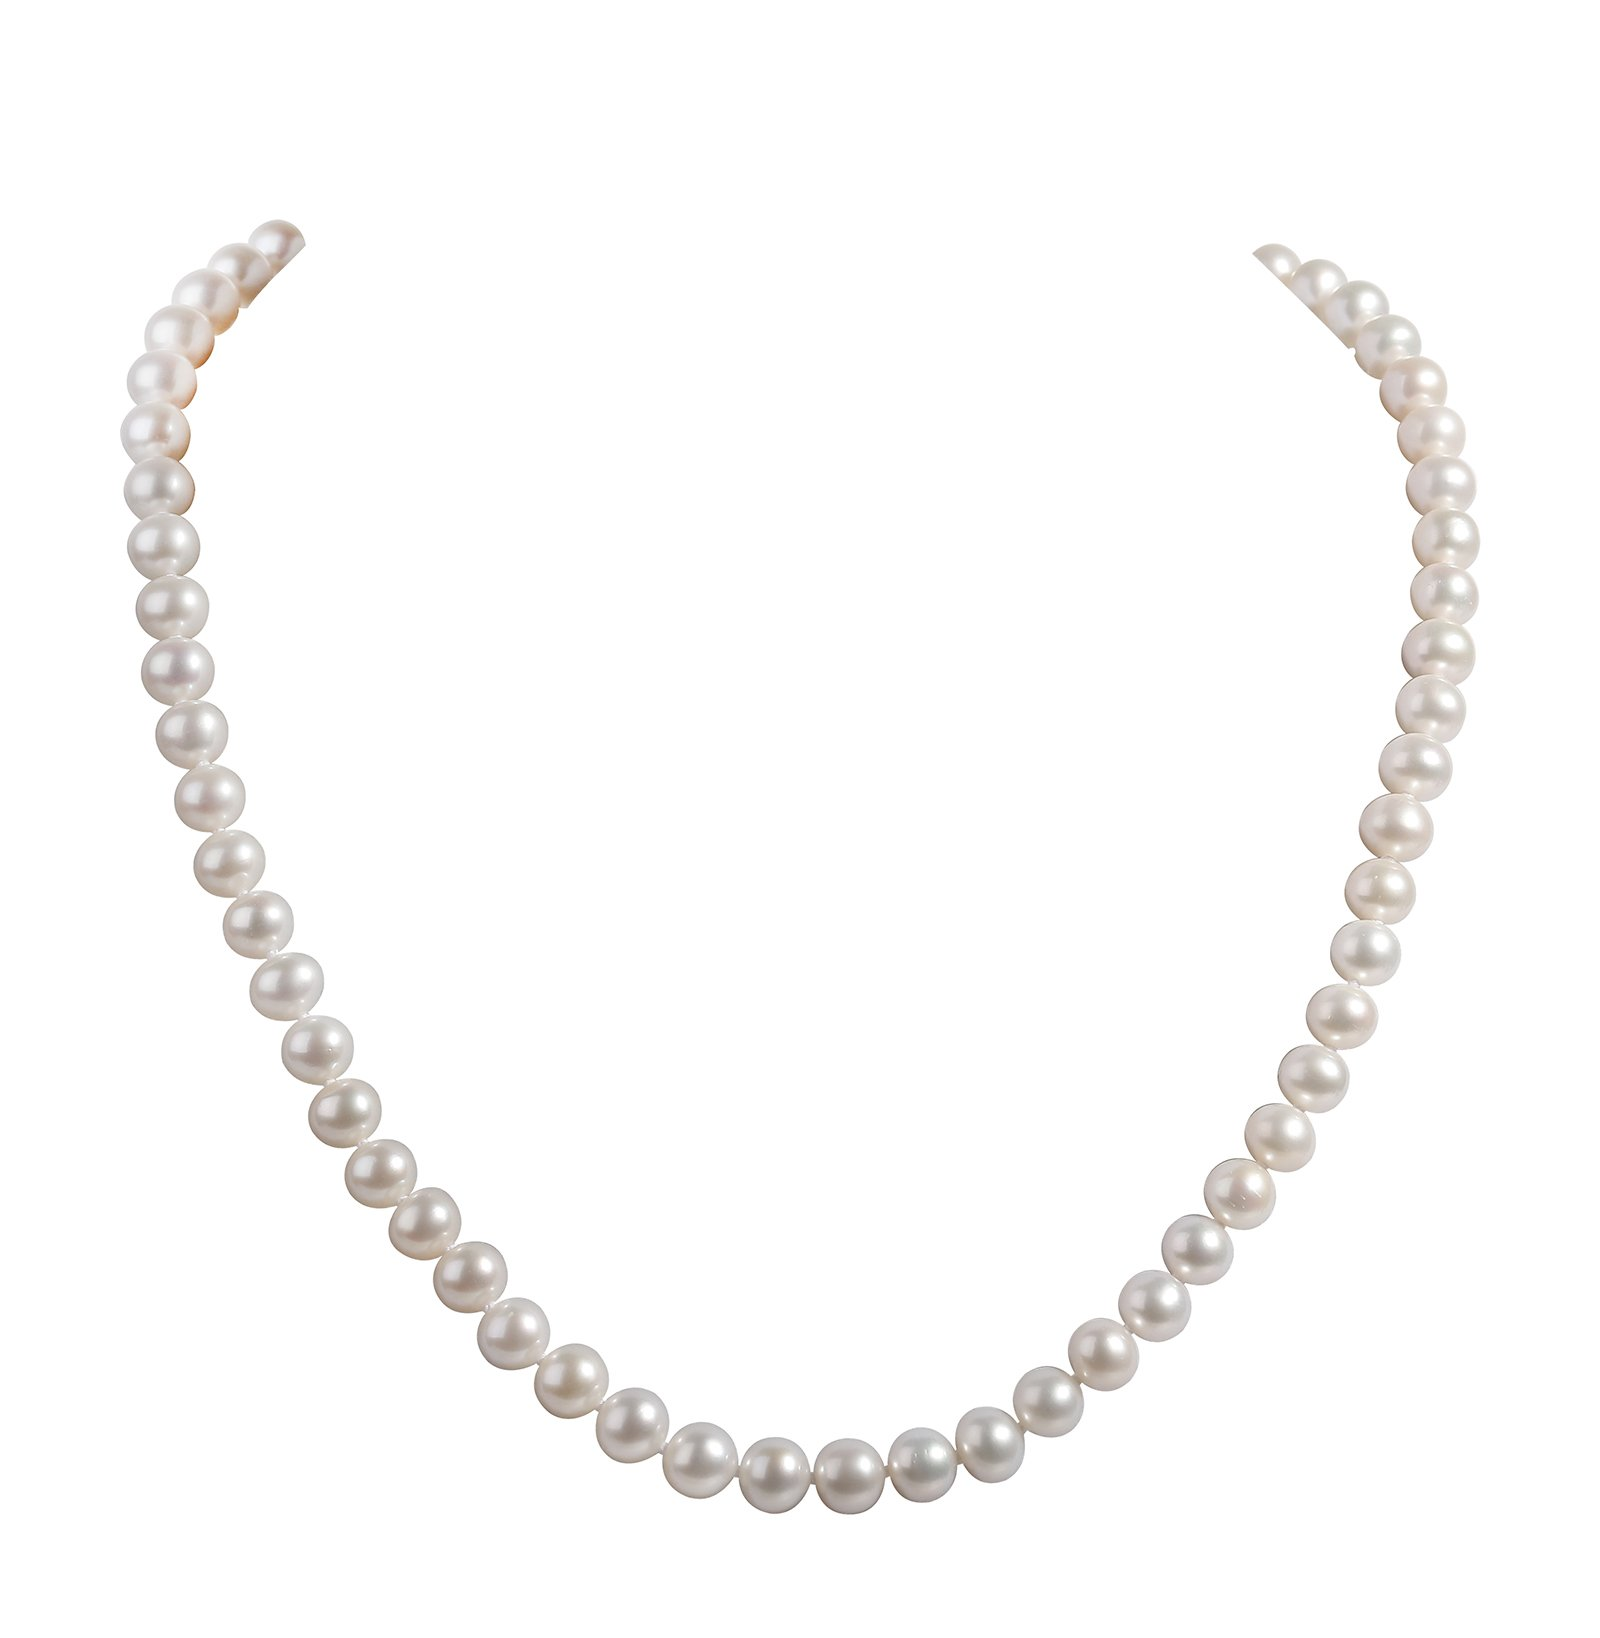 AIDNI AA Quality Freshwater Cultured White Round Pearl Necklace, Princess Length 18.5'' (7.0-7.5mm)